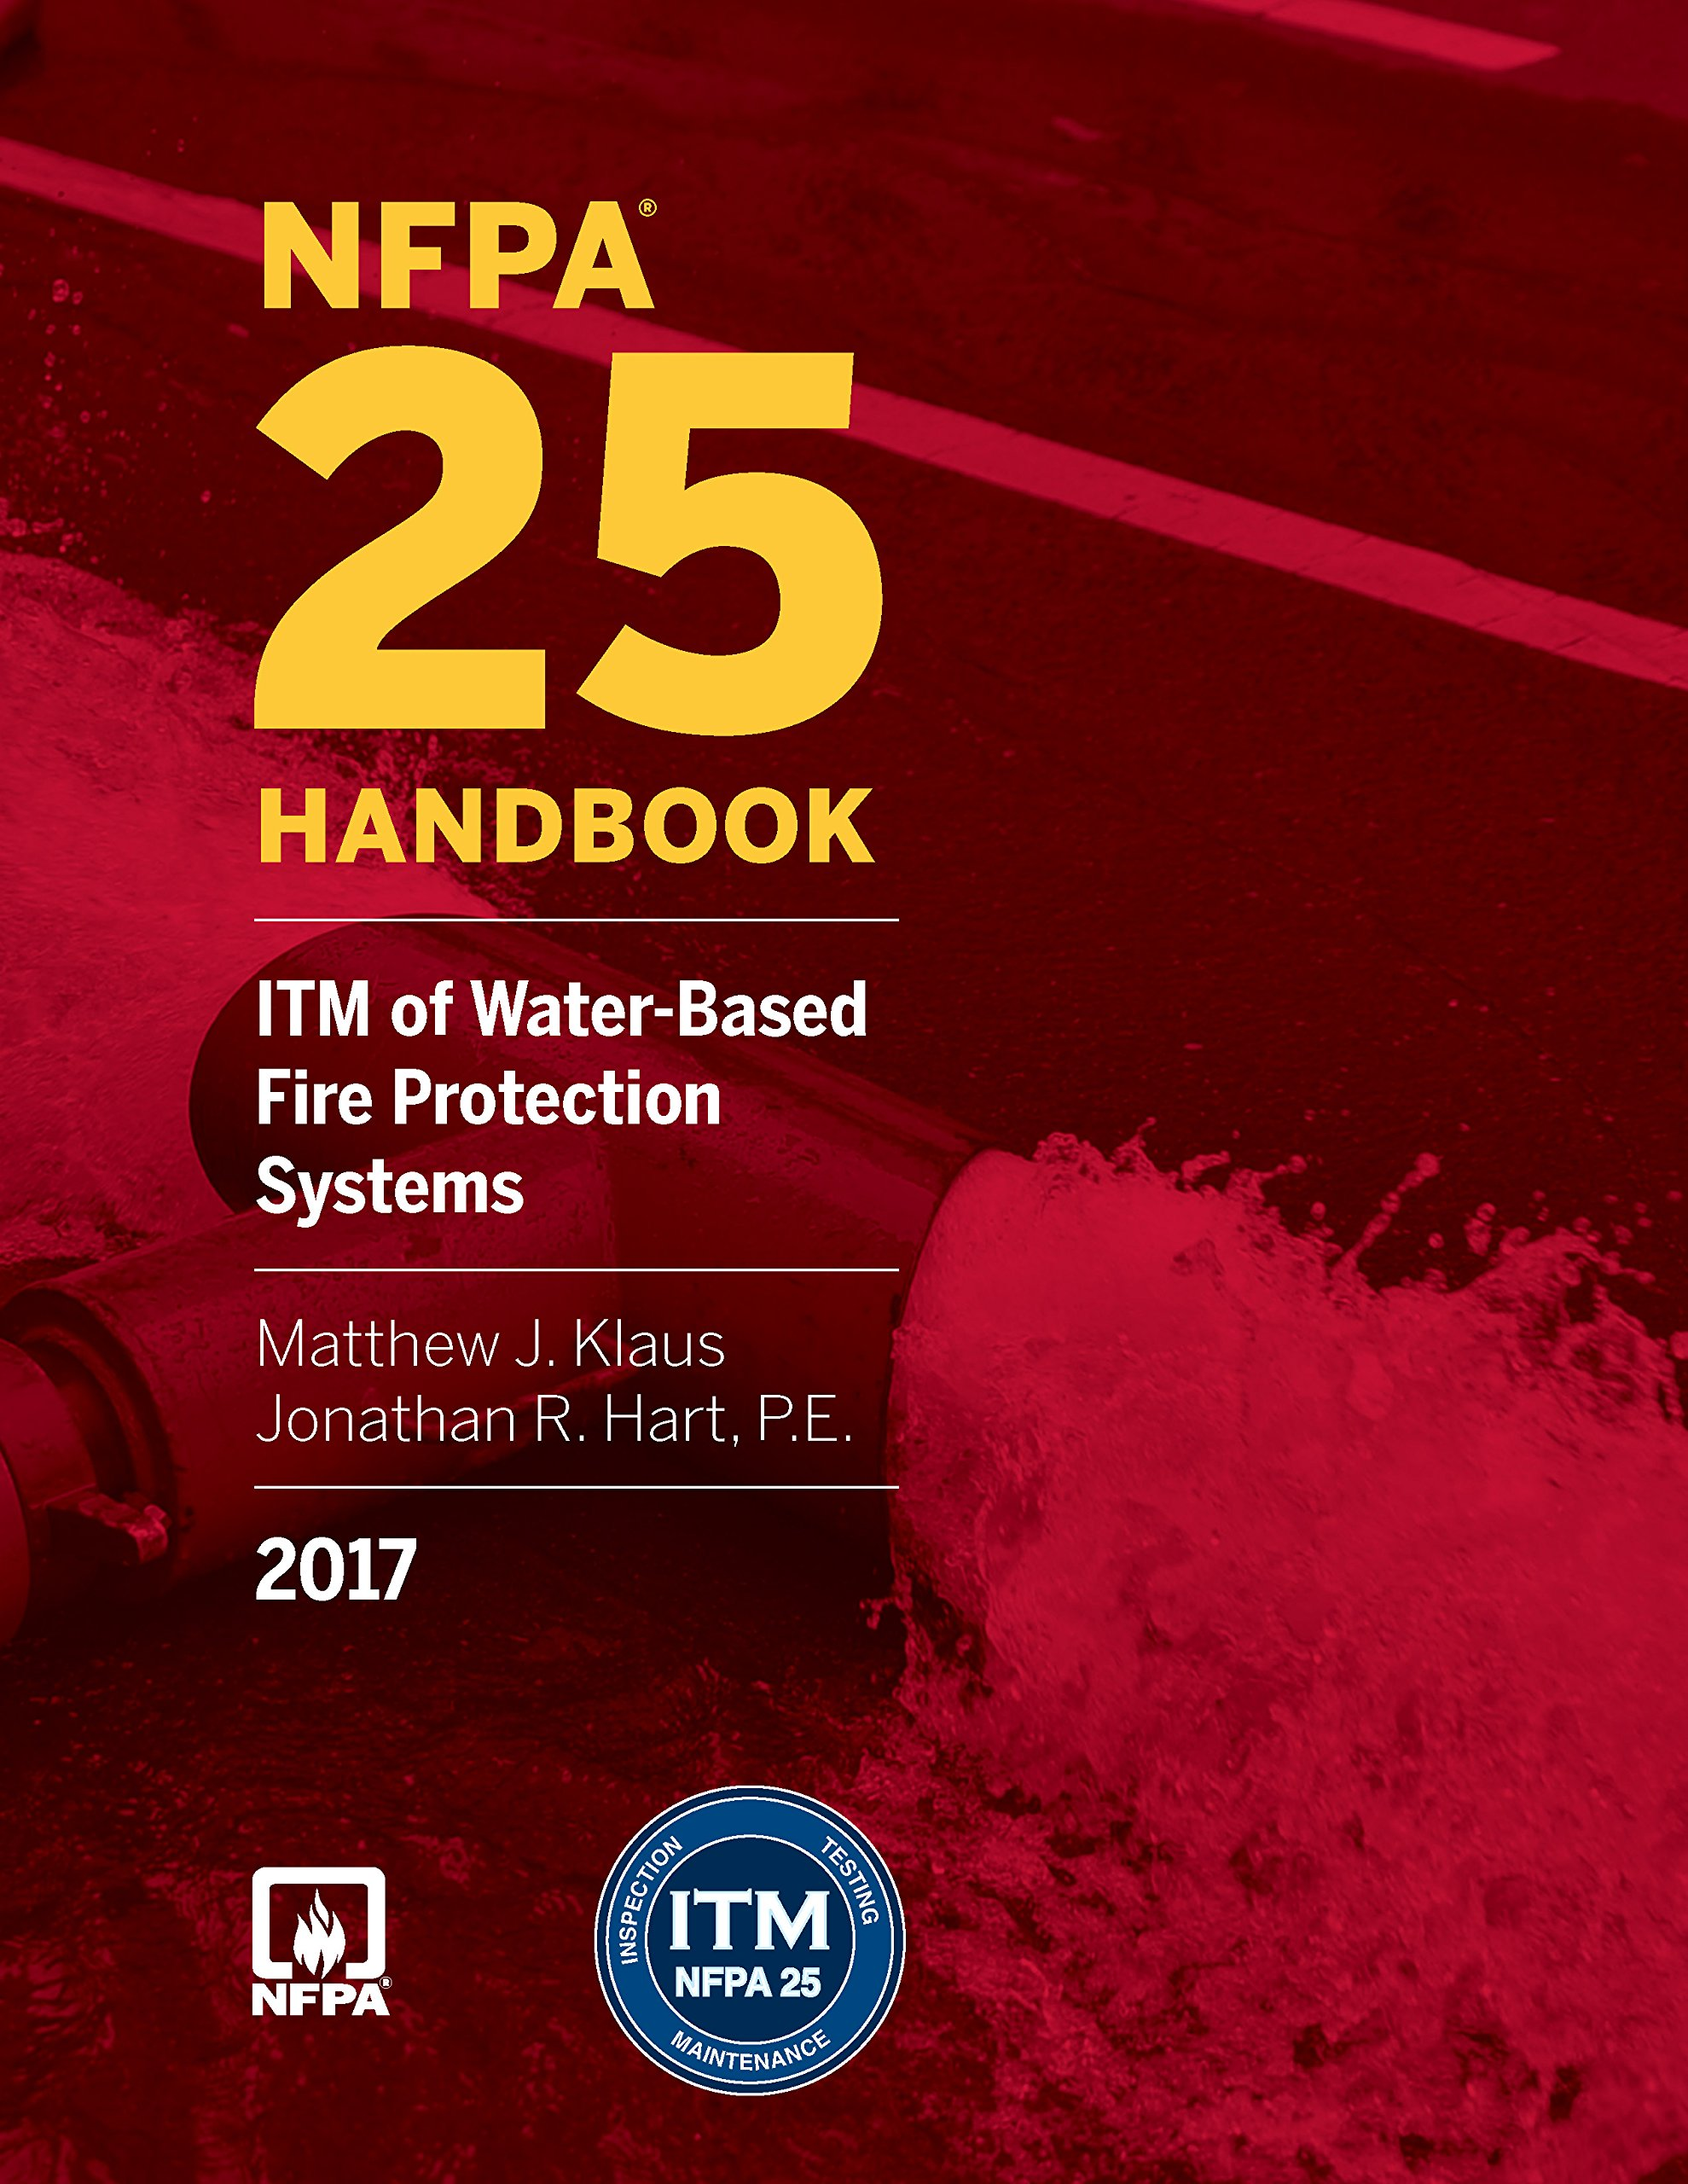 NFPA 25: ITM of Water-Based Fire Protection Systems Handbook, 2017 ...